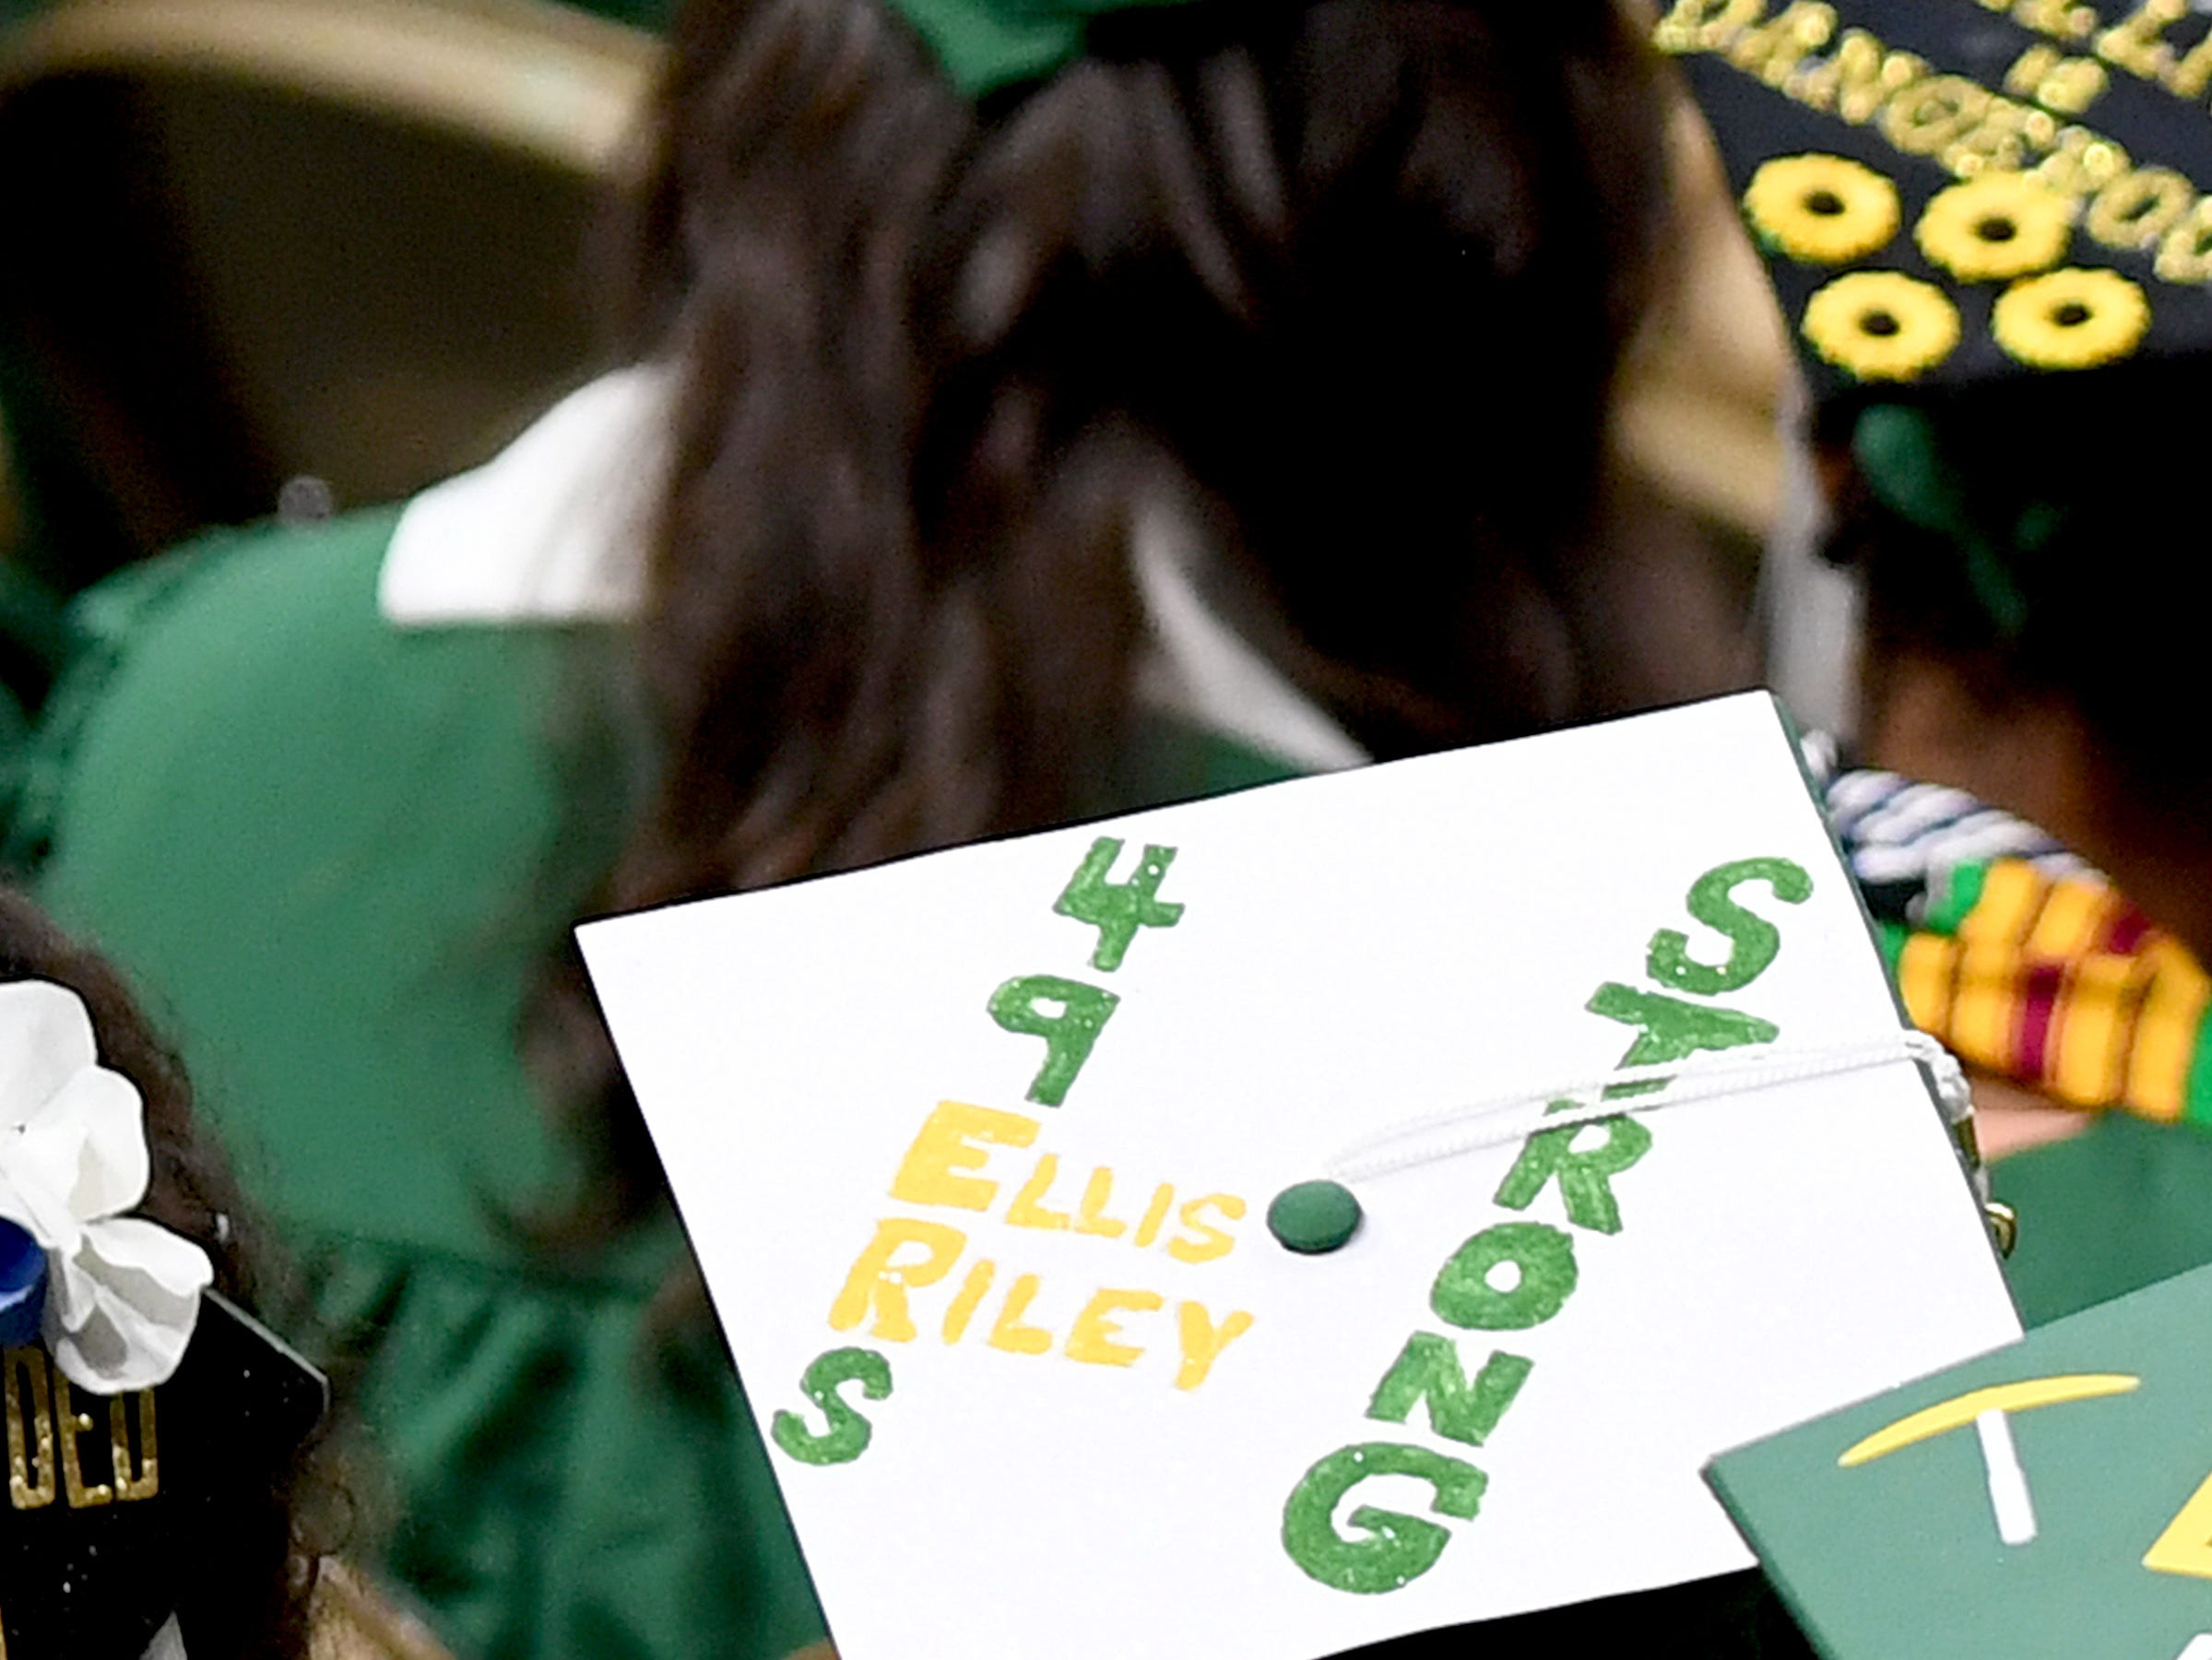 A UNC Charlotte graduate wears a decorated cap honoring the two victims of the April 30 shooting at the university, Riley Howell and Ellis Parlier during the University's Commencement ceremony for the College of Liberal Arts and Sciences in Charlotte on May 11, 2019.